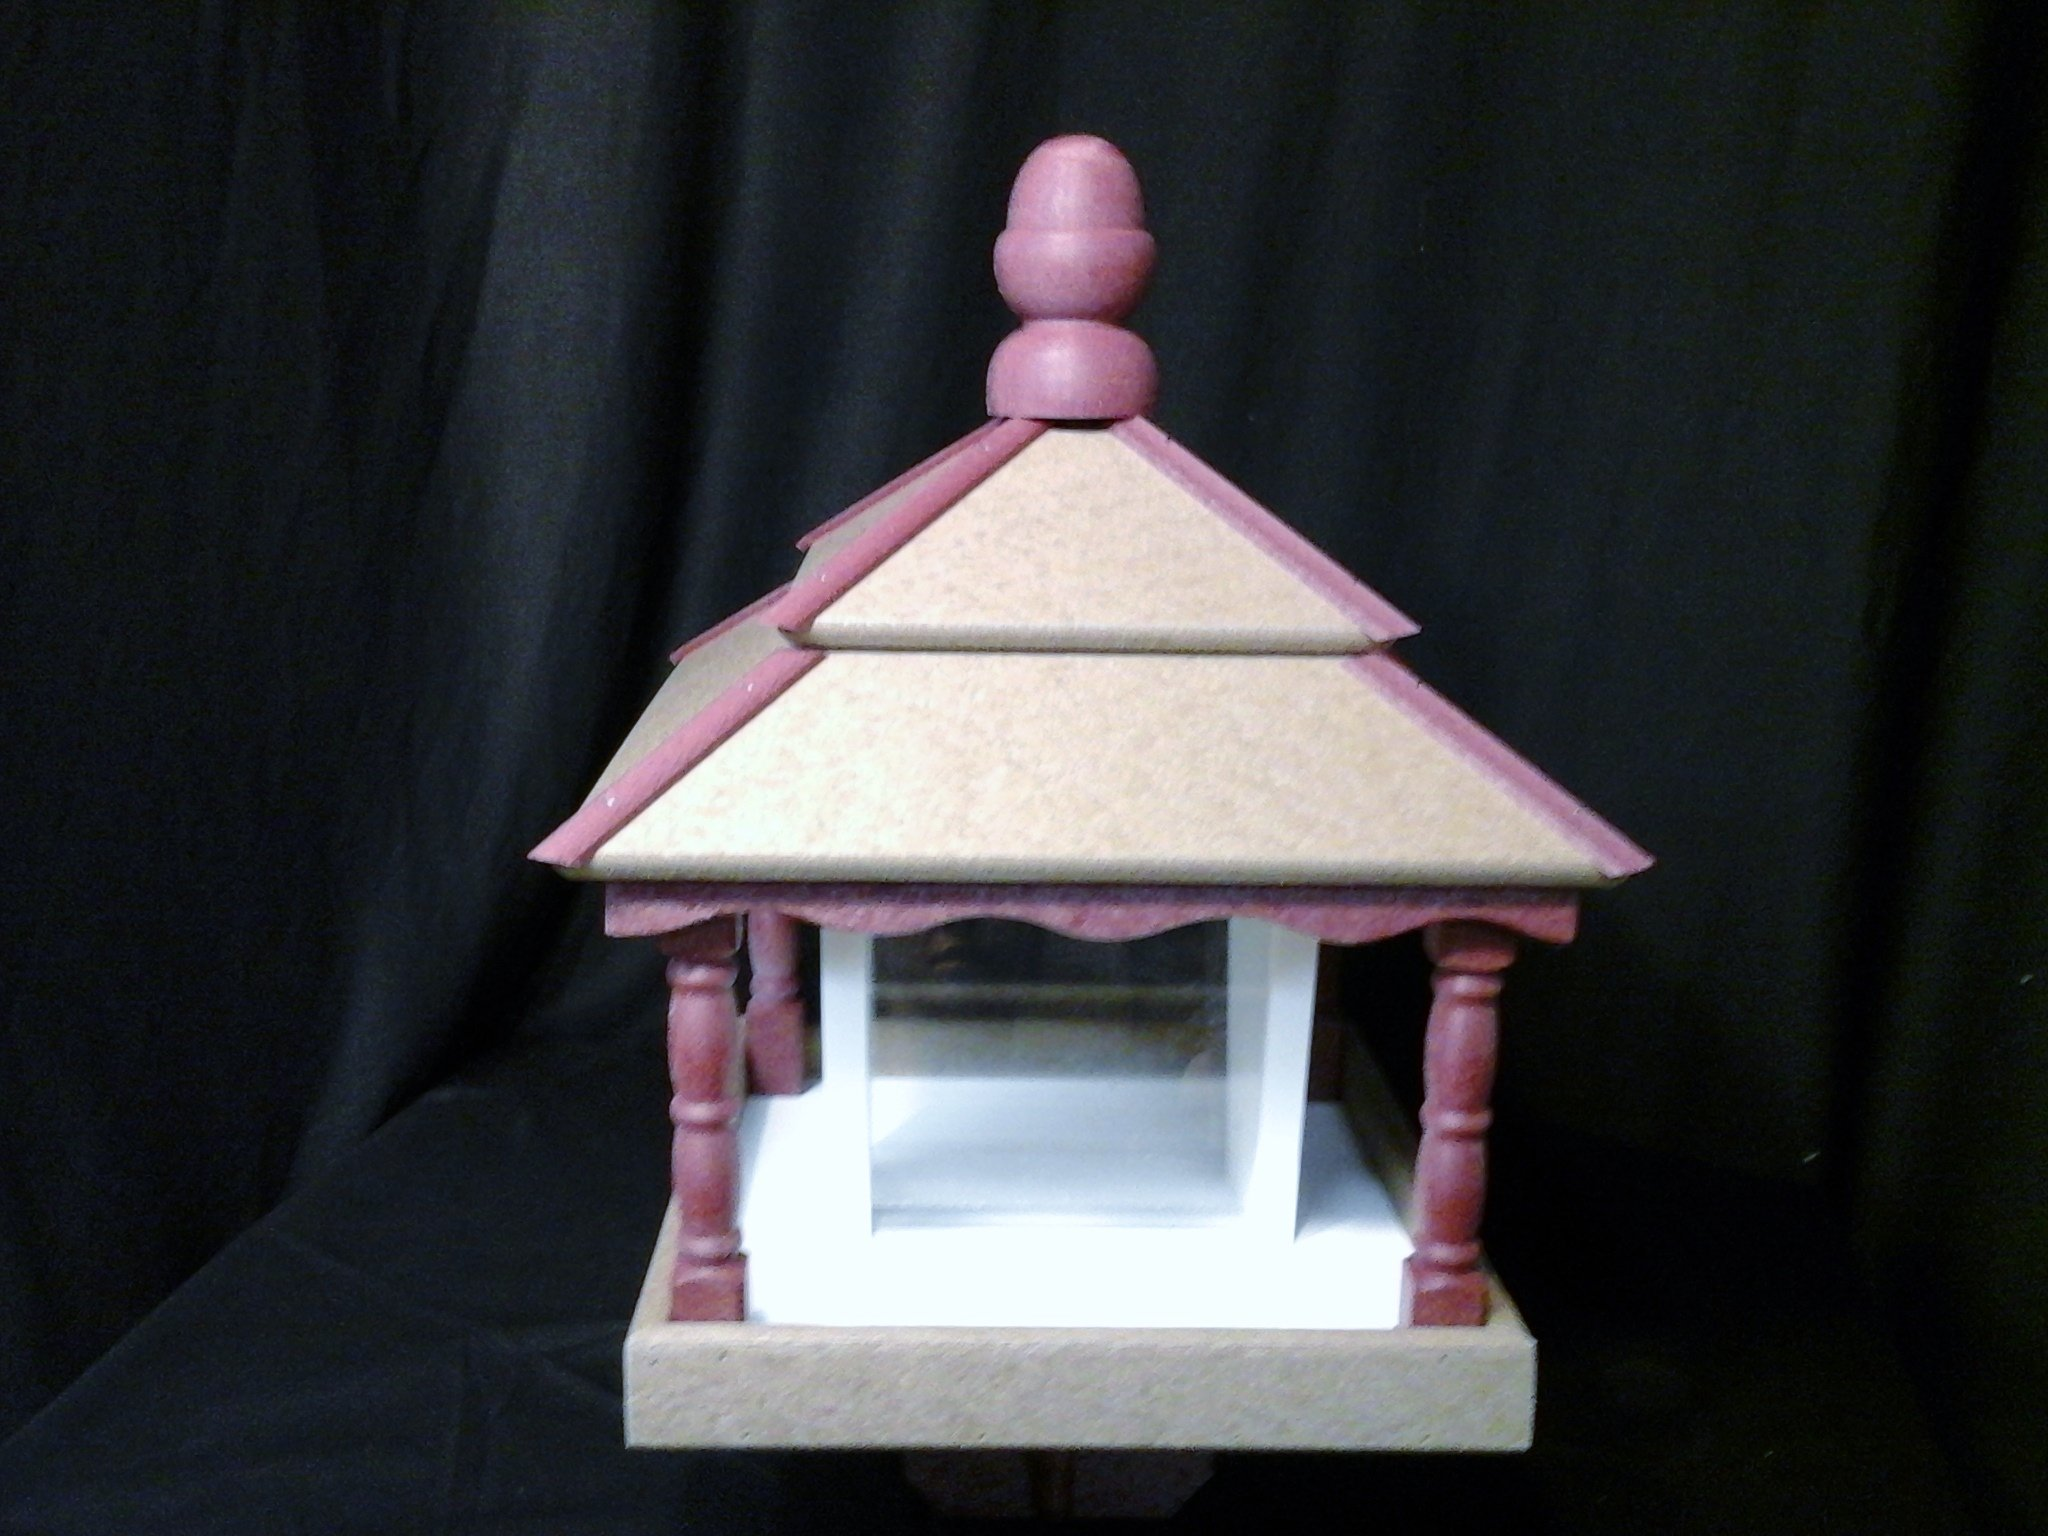 Square Poly Bird Feeder Amish Gazebo Handcrafted Homemade Weatherwood-Cherry-Wht